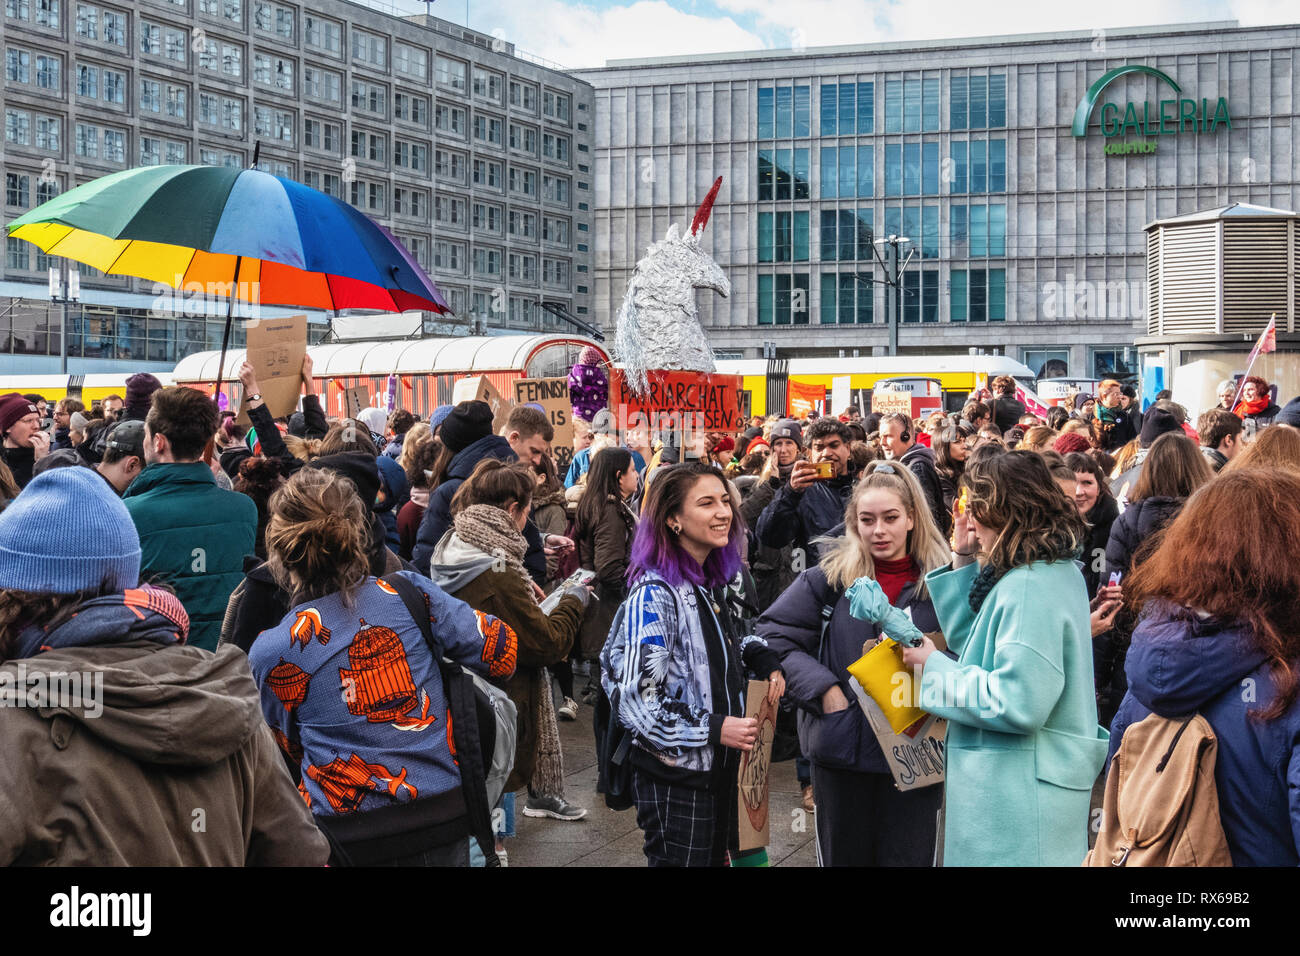 Berlin, Germany, 8th March 2019. People gather at 2pm at Alexanderplatz to march to Kreuzberg. International Women's day is a public holiday for the first time in Berlin – The other 15 German States have not yet declared the day a holiday. People met at various venues in the city to support equal rights for woman under the motto 'Celebrate, strike, fight on'. Credit: Eden Breitz/Alamy Live News - Stock Image